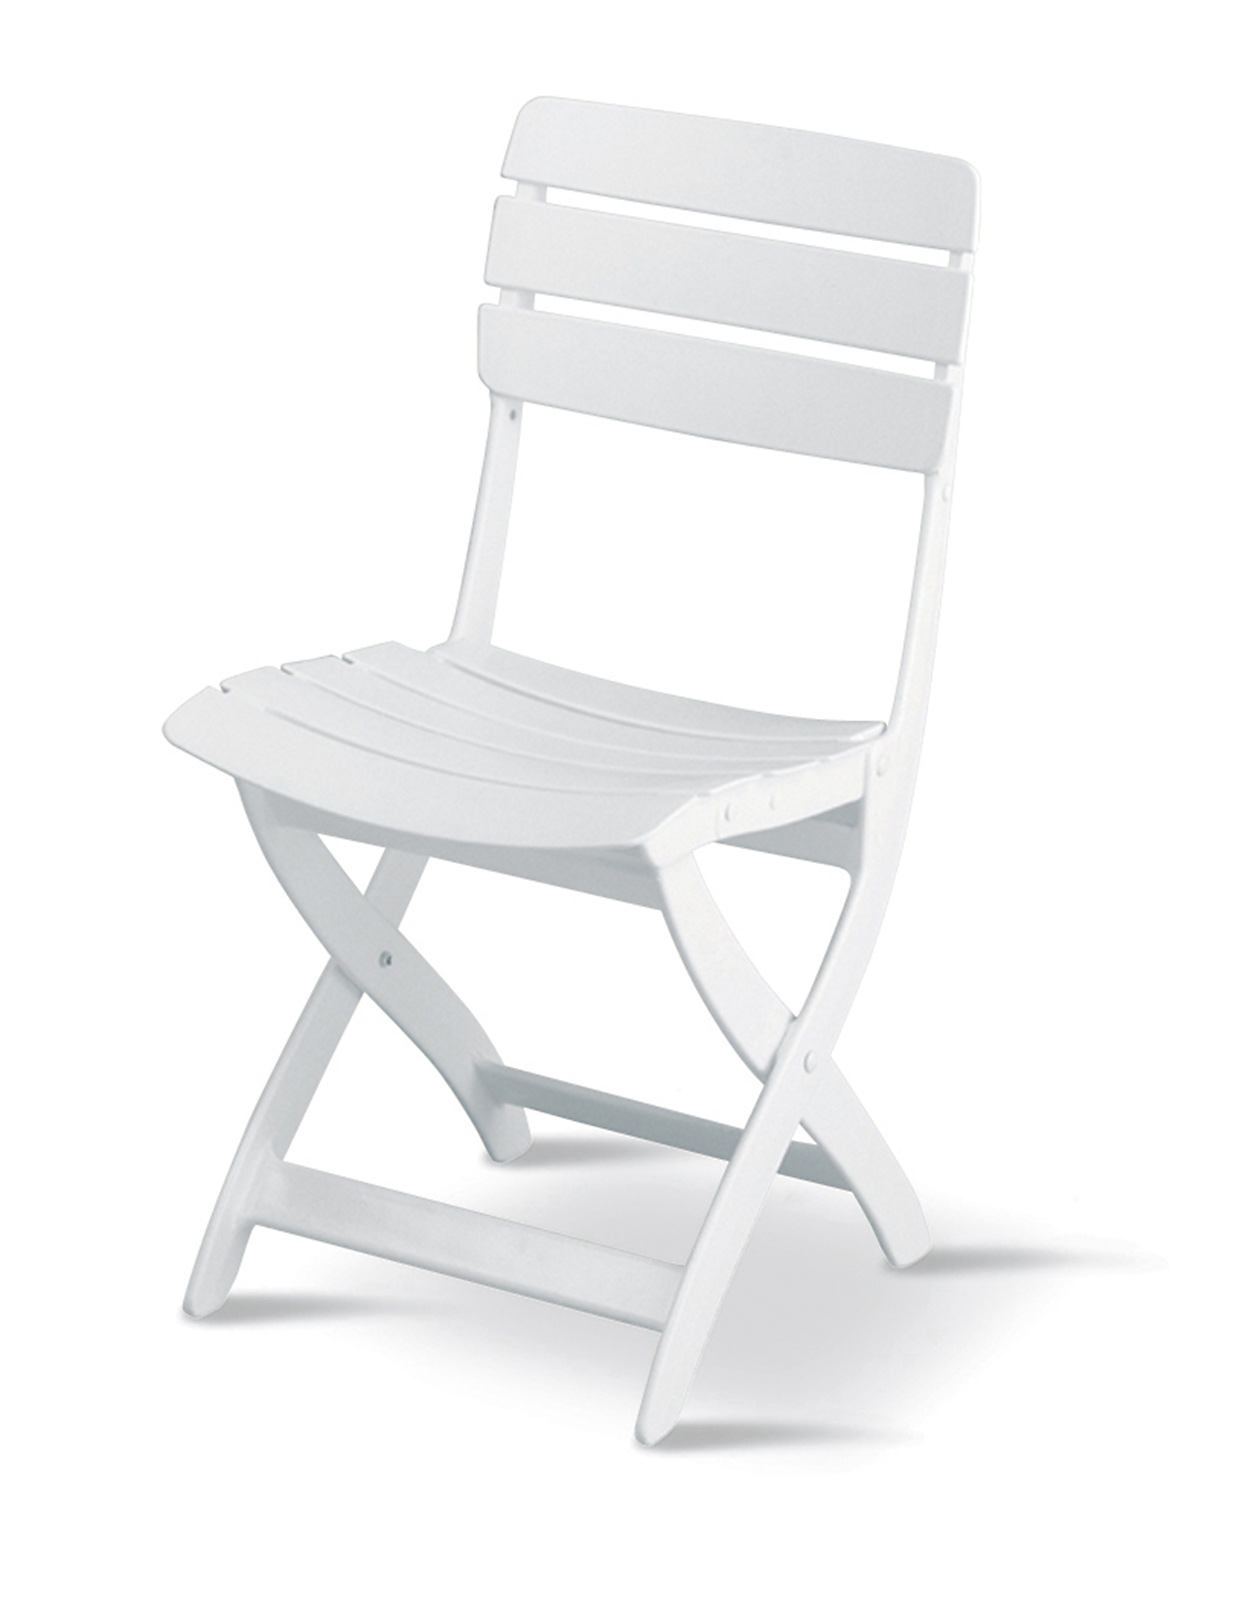 outdoor chairs kmart dark wood dining folding chair